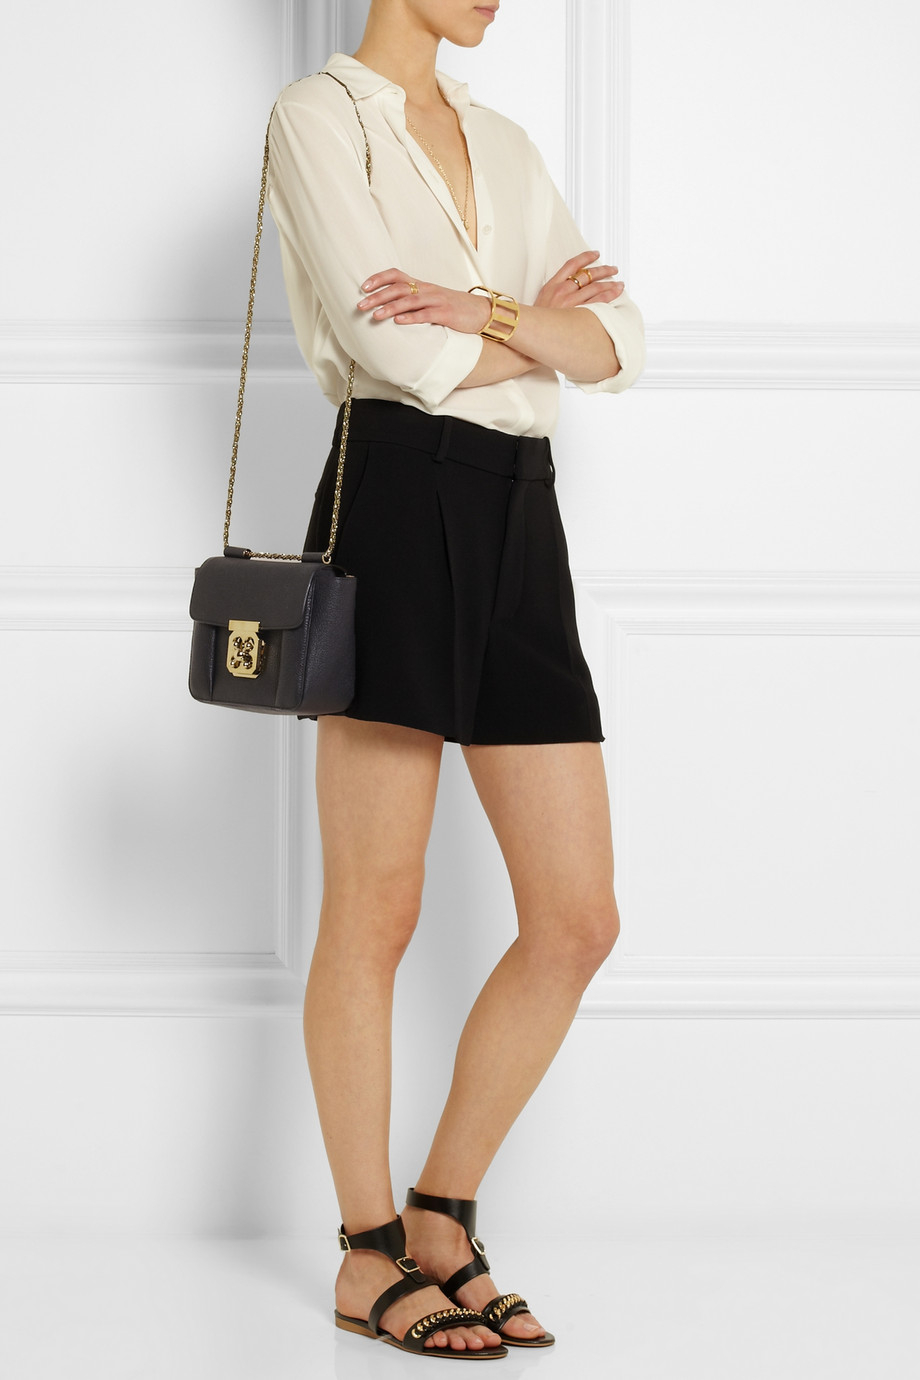 Chlo¨¦ Elsie Small Textured-Leather Shoulder Bag in Black | Lyst